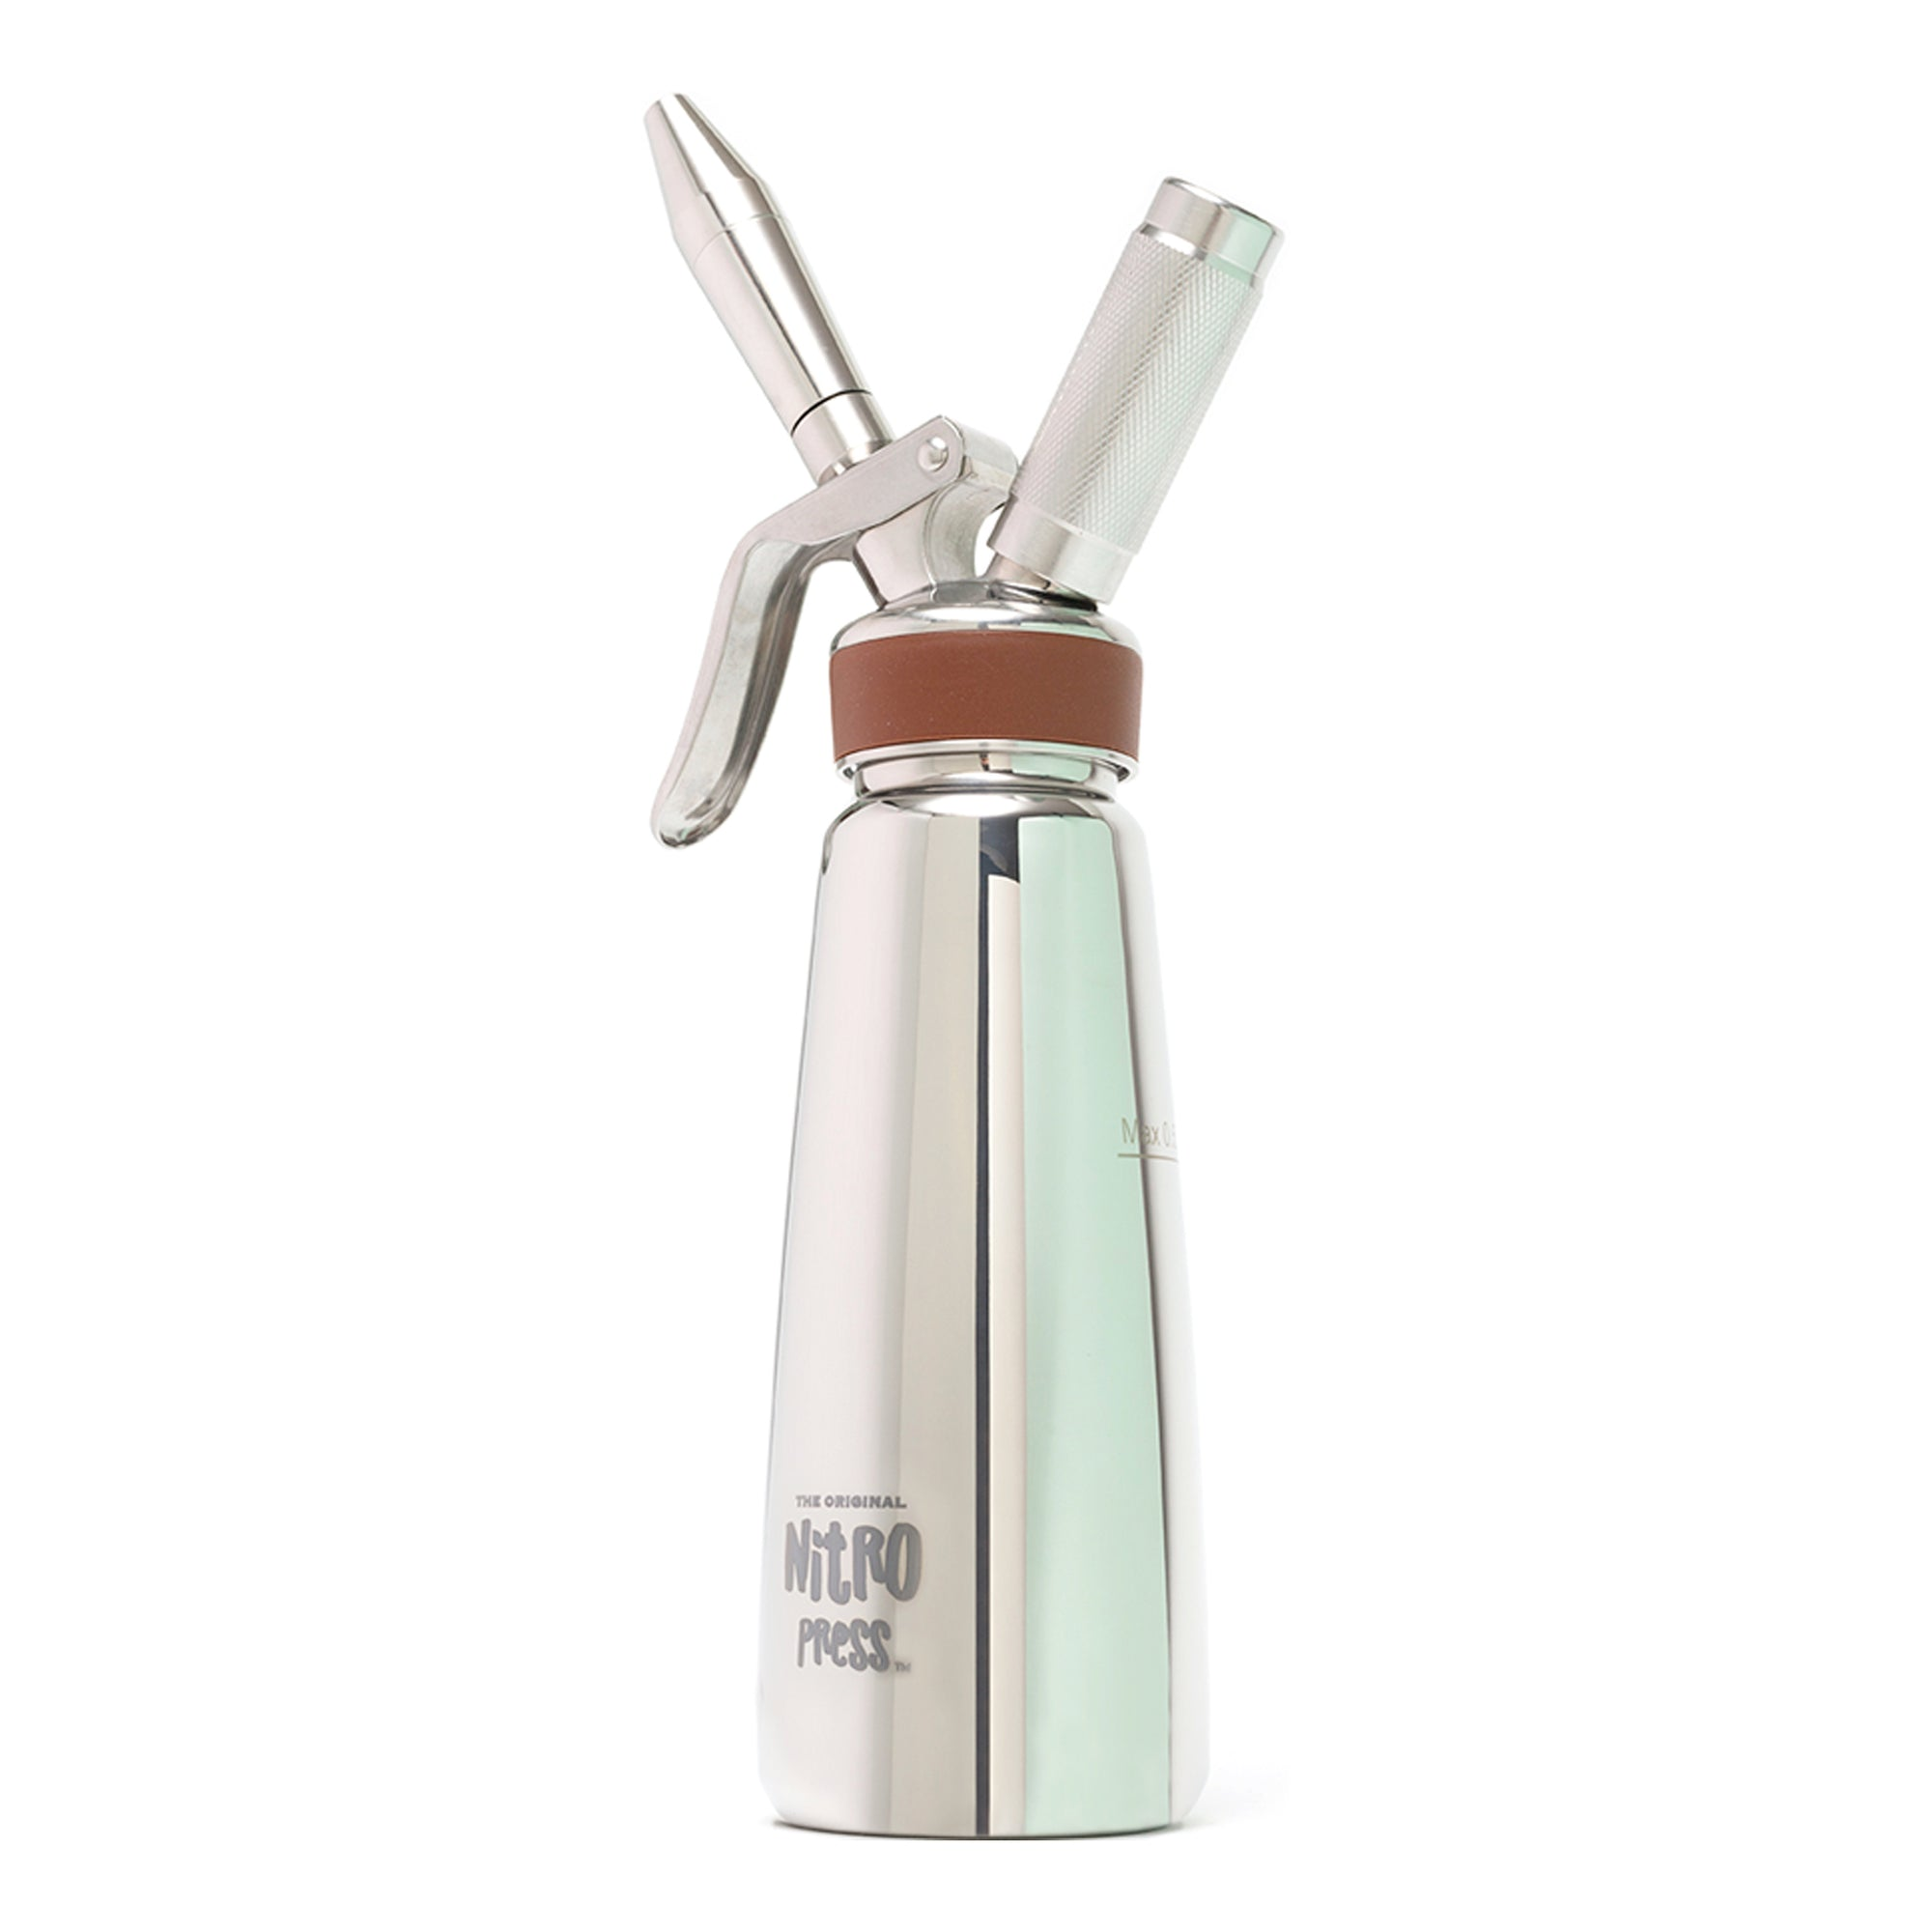 Nitro Press Cold brew dispenser 500ml - Hatfield - Espresso Gear